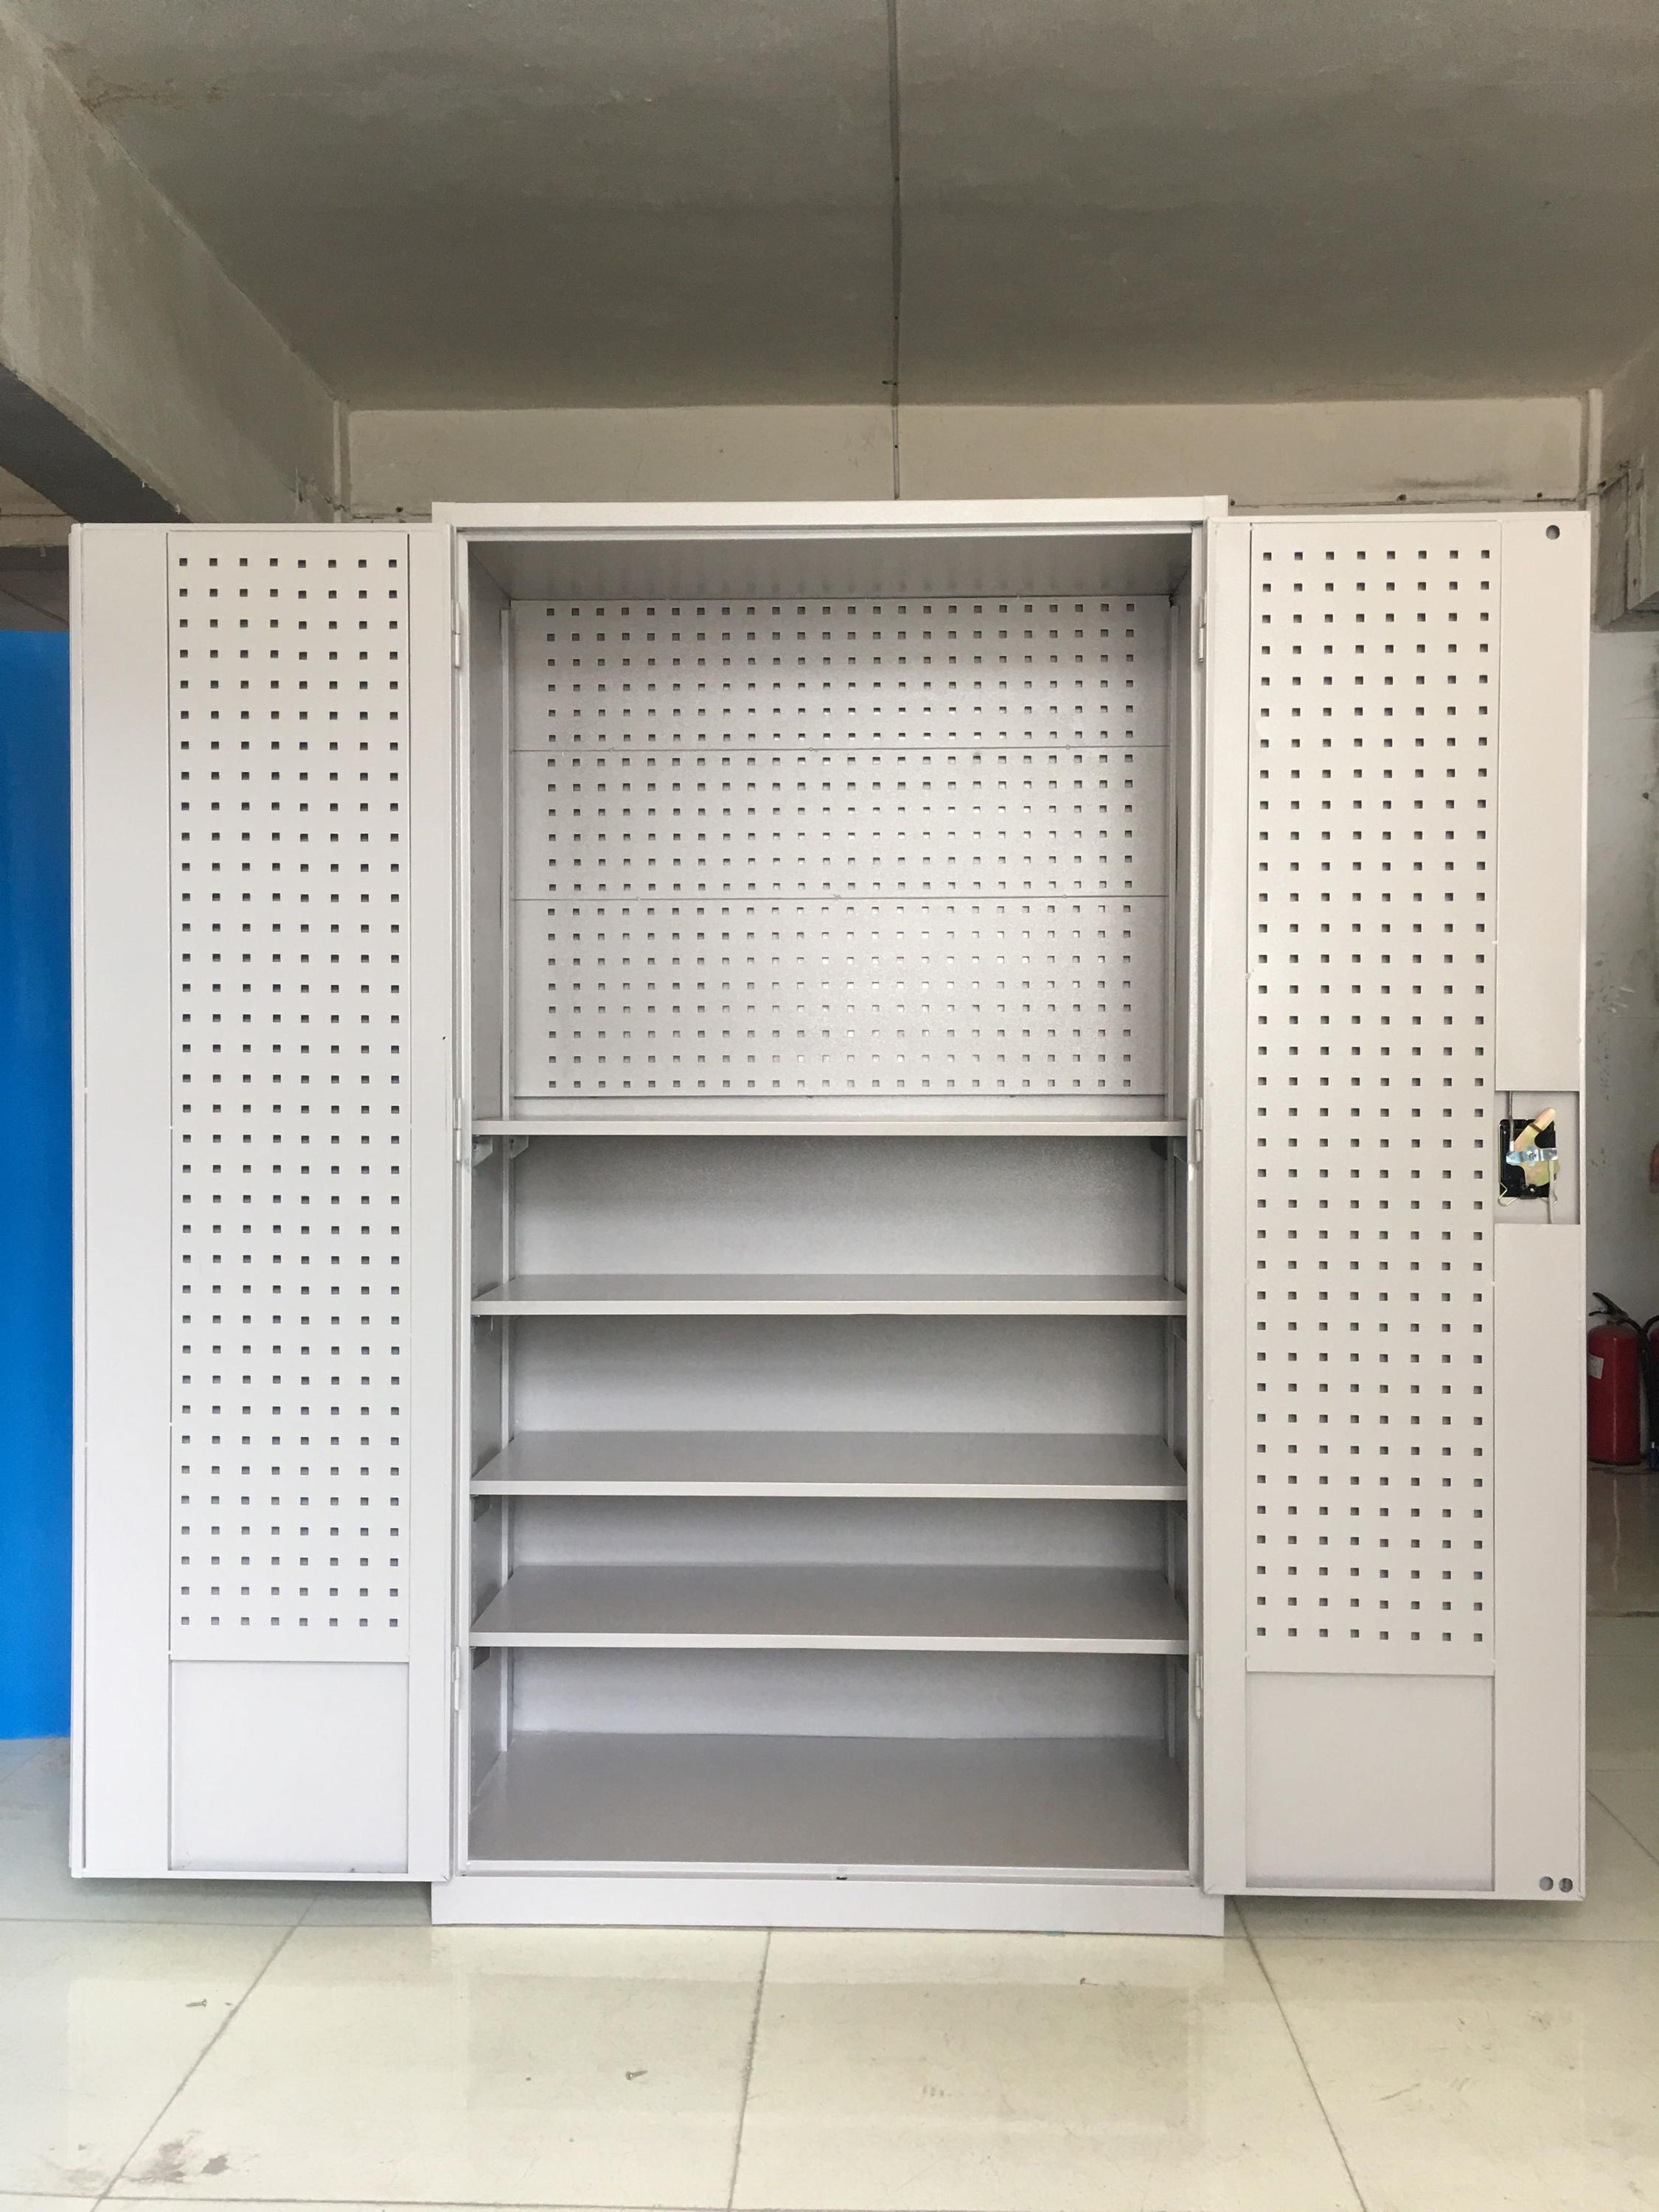 Hot Sale Garage Cabinets Tool Cabinets Workshop Cabinets Factory Direct Buy Tools Cabinet Hardware Tools Cabinet Tools Storage Cabinet Product On